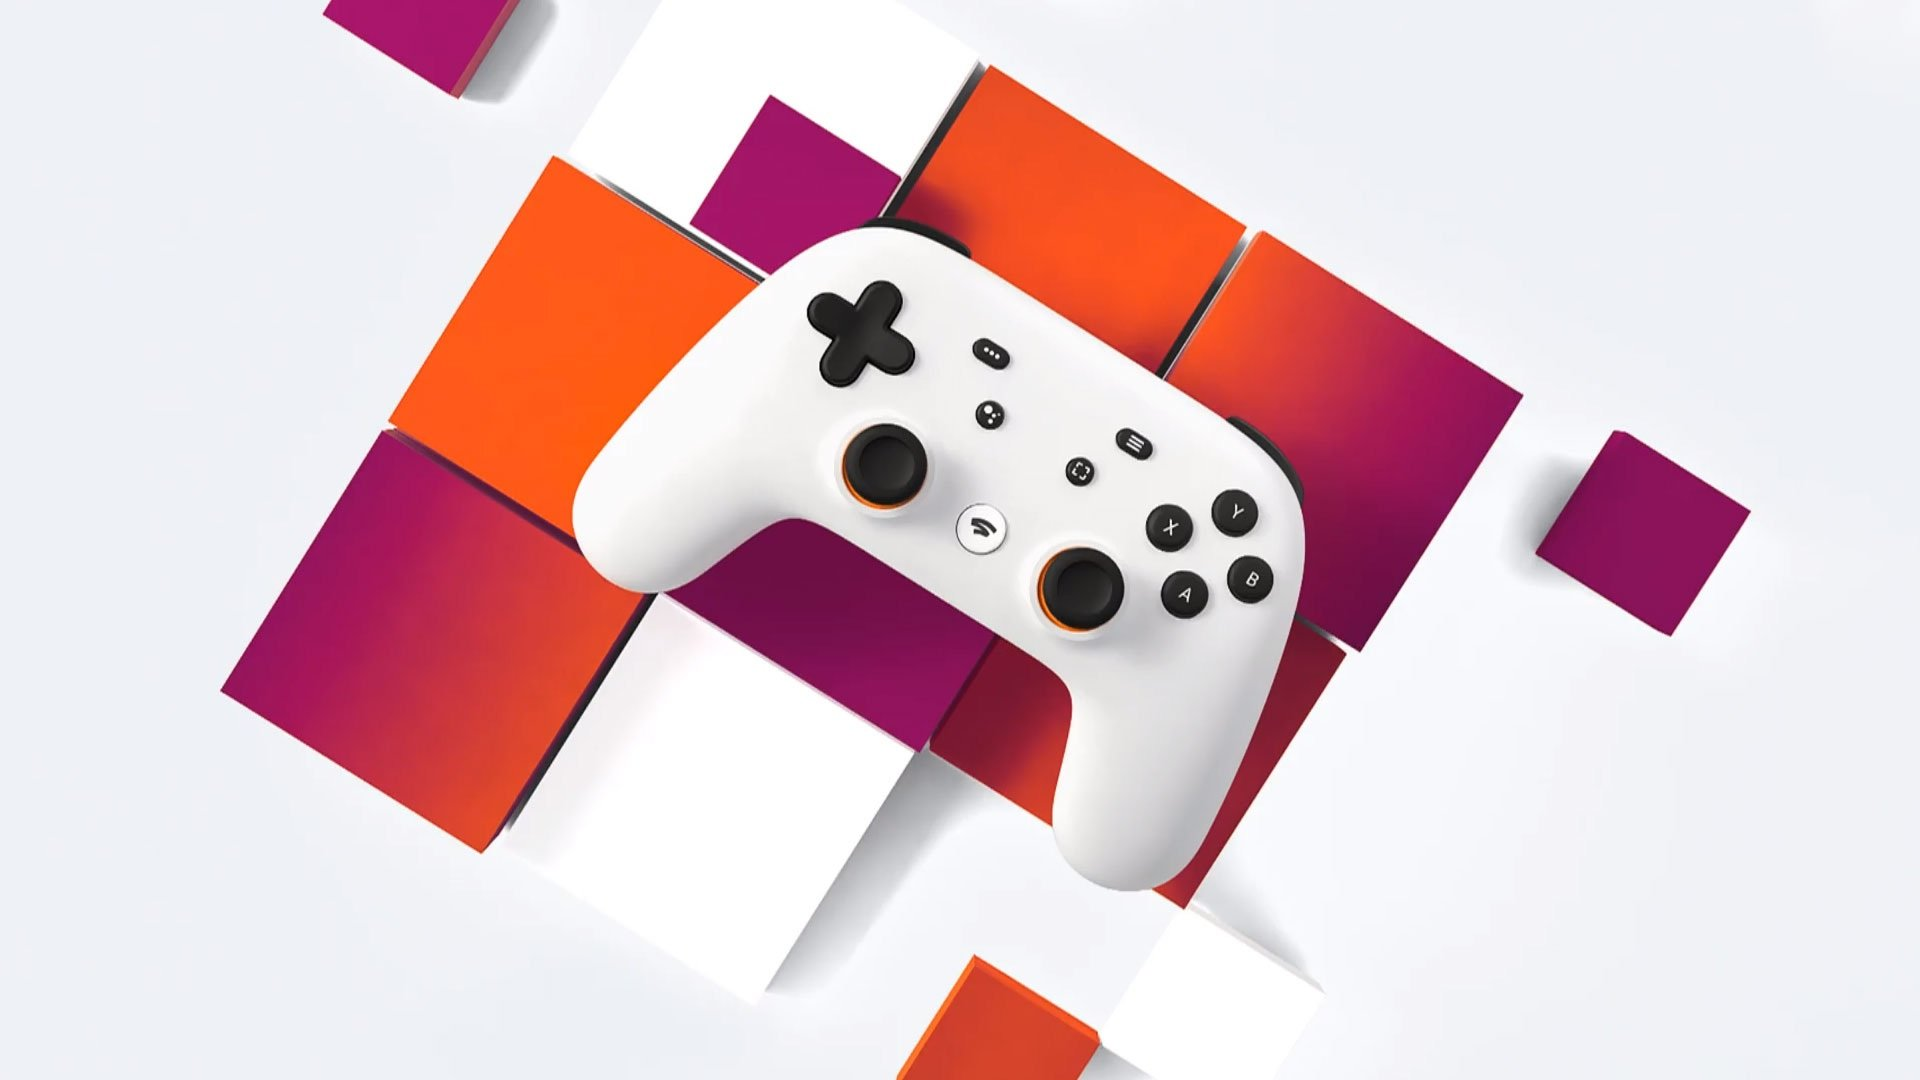 Stadia's VP & Head of Product has left Google screenshot